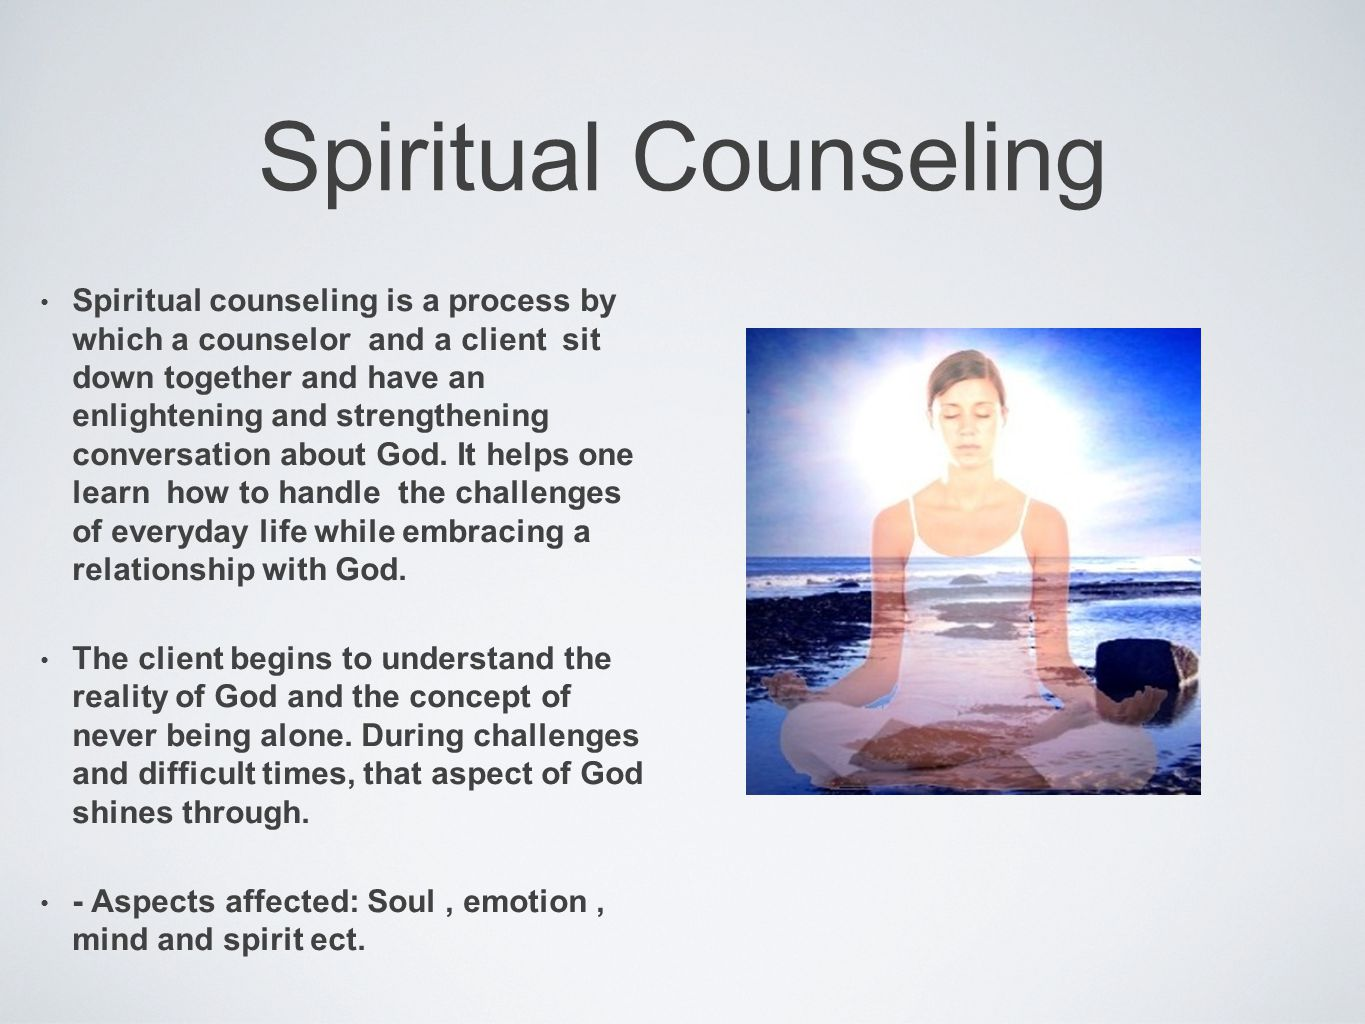 Spiritual Counseling Spiritual counseling is a process by which a counselor and a client sit down together and have an enlightening and strengthening conversation about God.